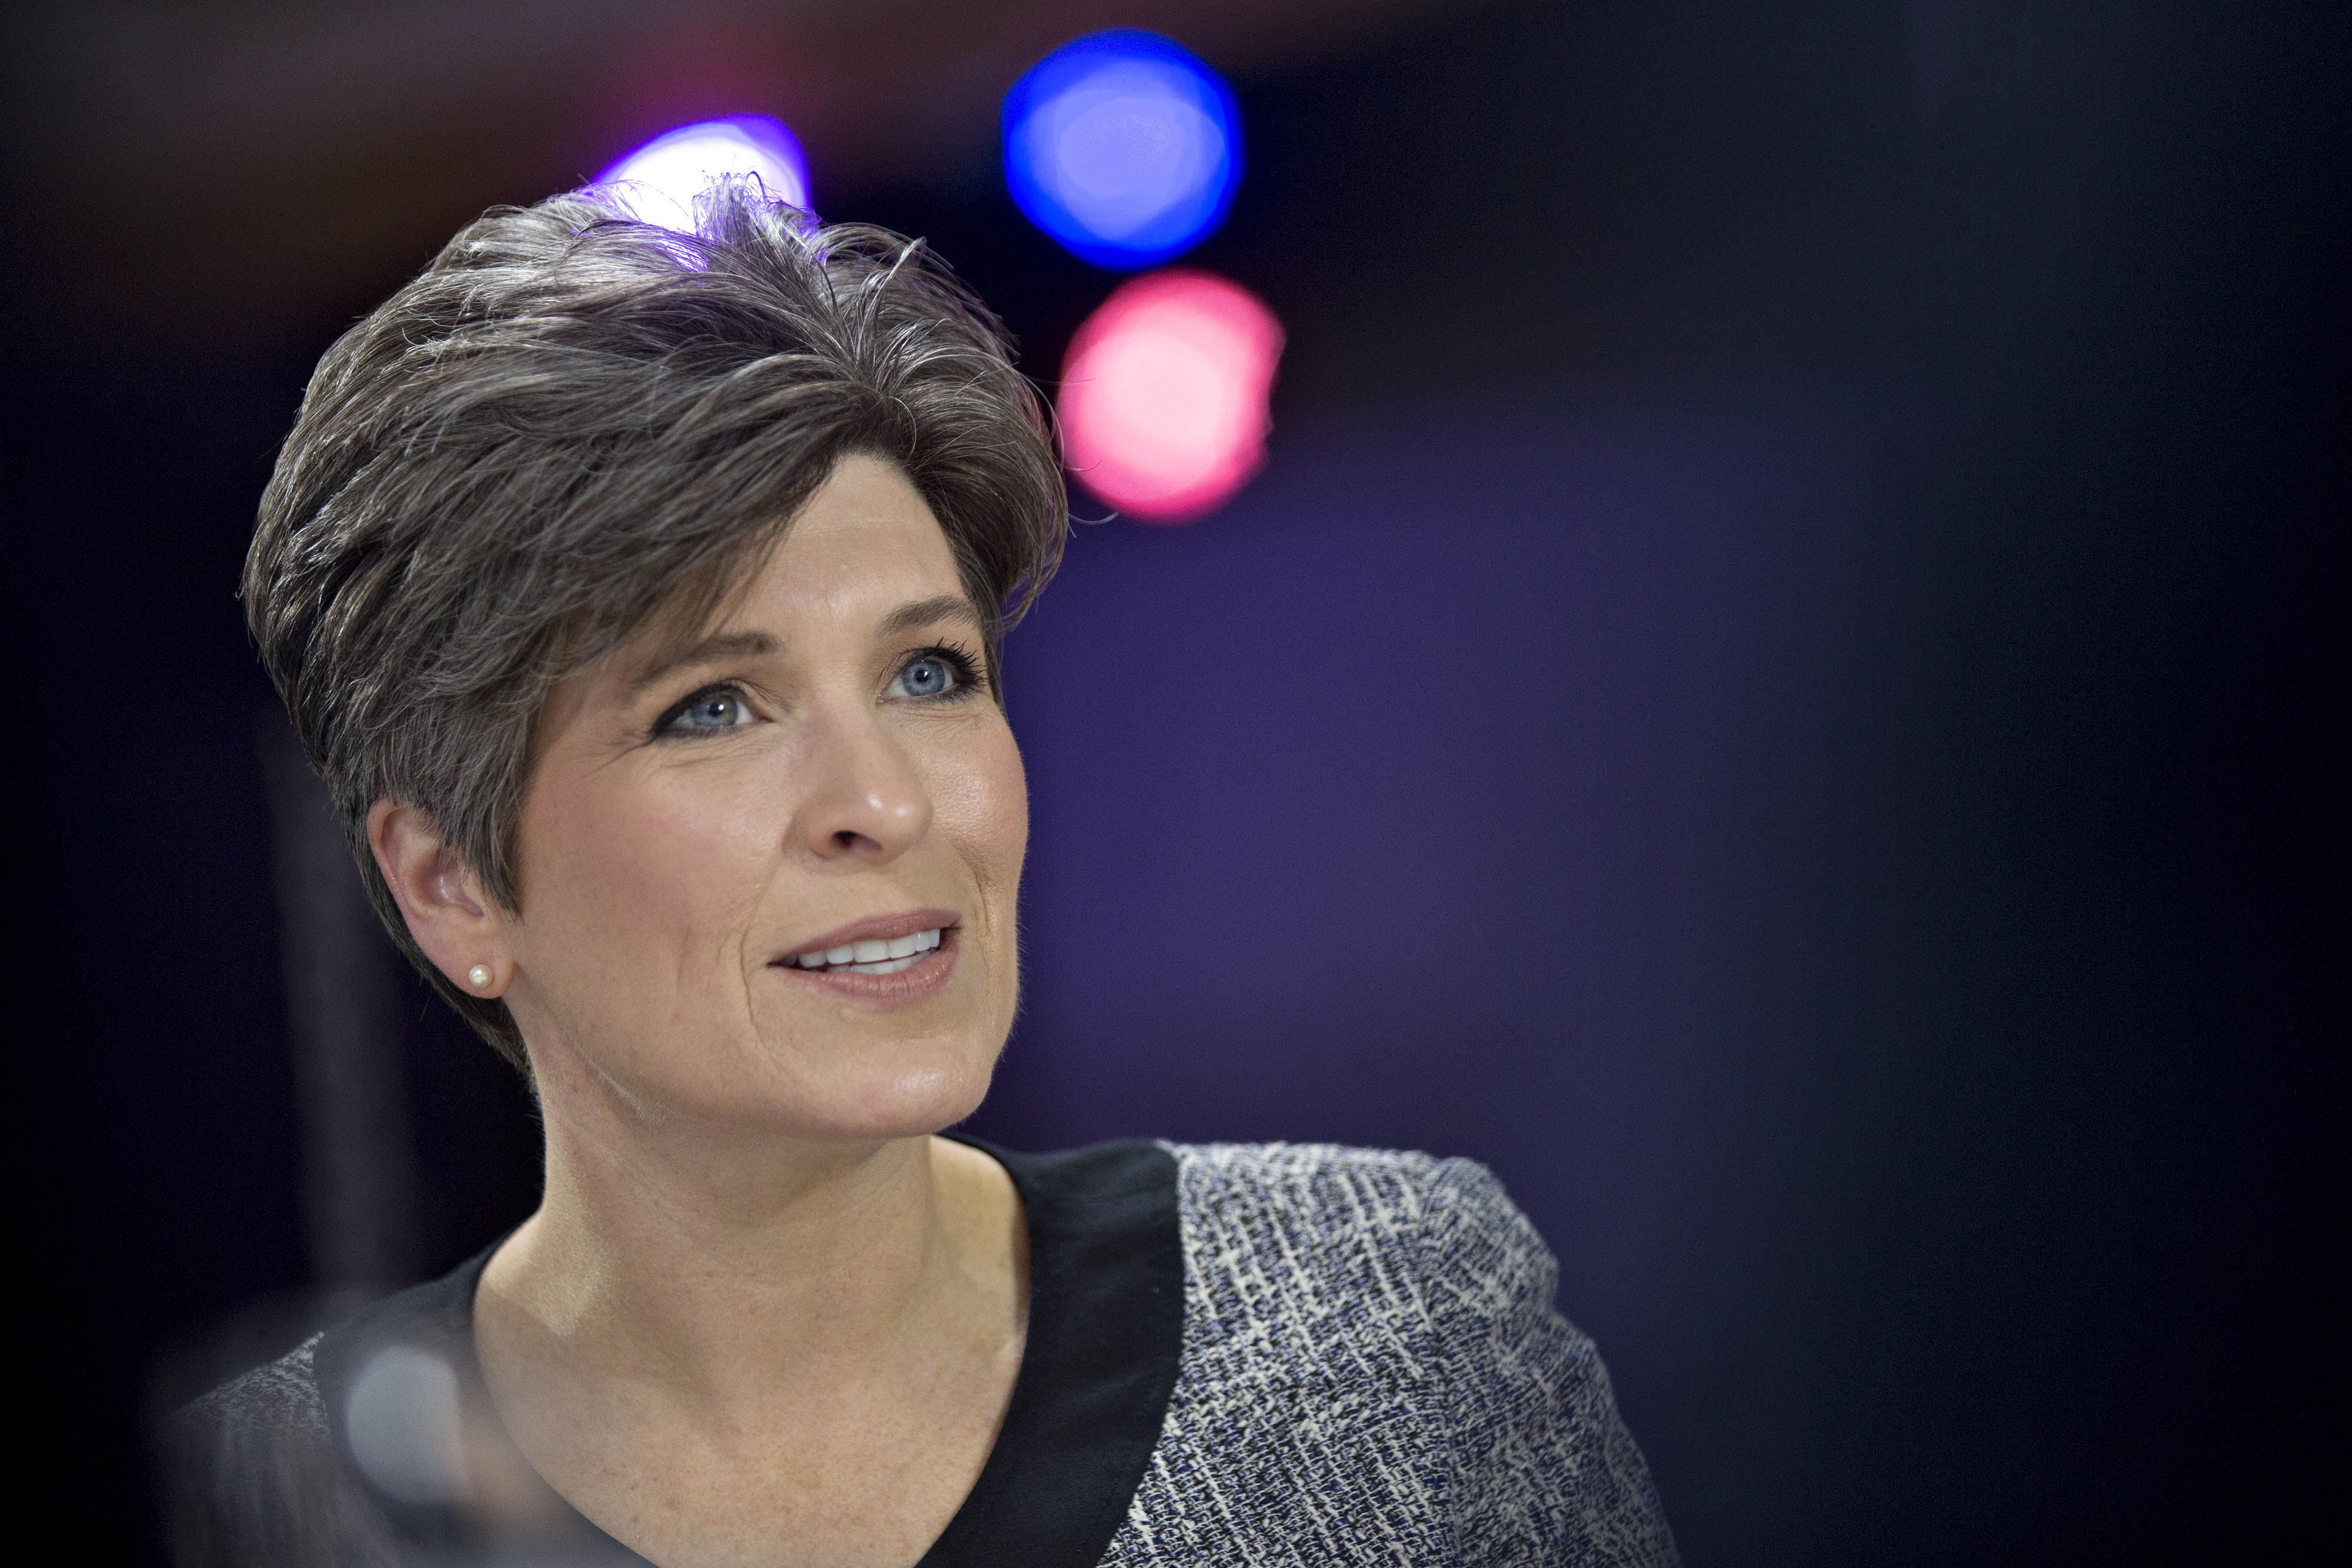 Senator Joni Ernst, a Republican from Iowa, speaks during a Bloomberg Politics interview in Des Moines, Iowa, on Feb. 1, 2016.